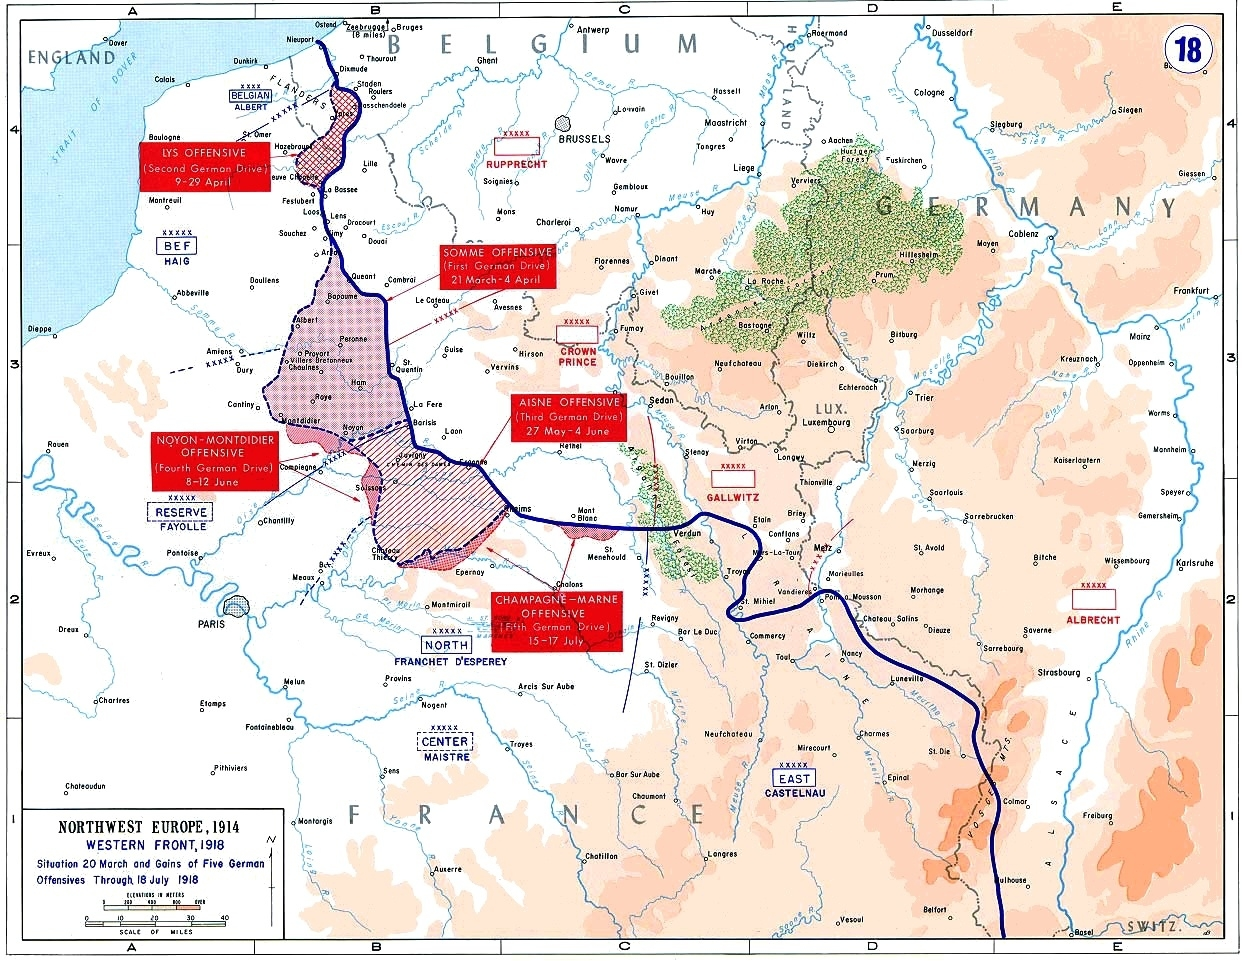 40 Maps That Explain World War I | Vox regarding Map Of Germany During Ww1